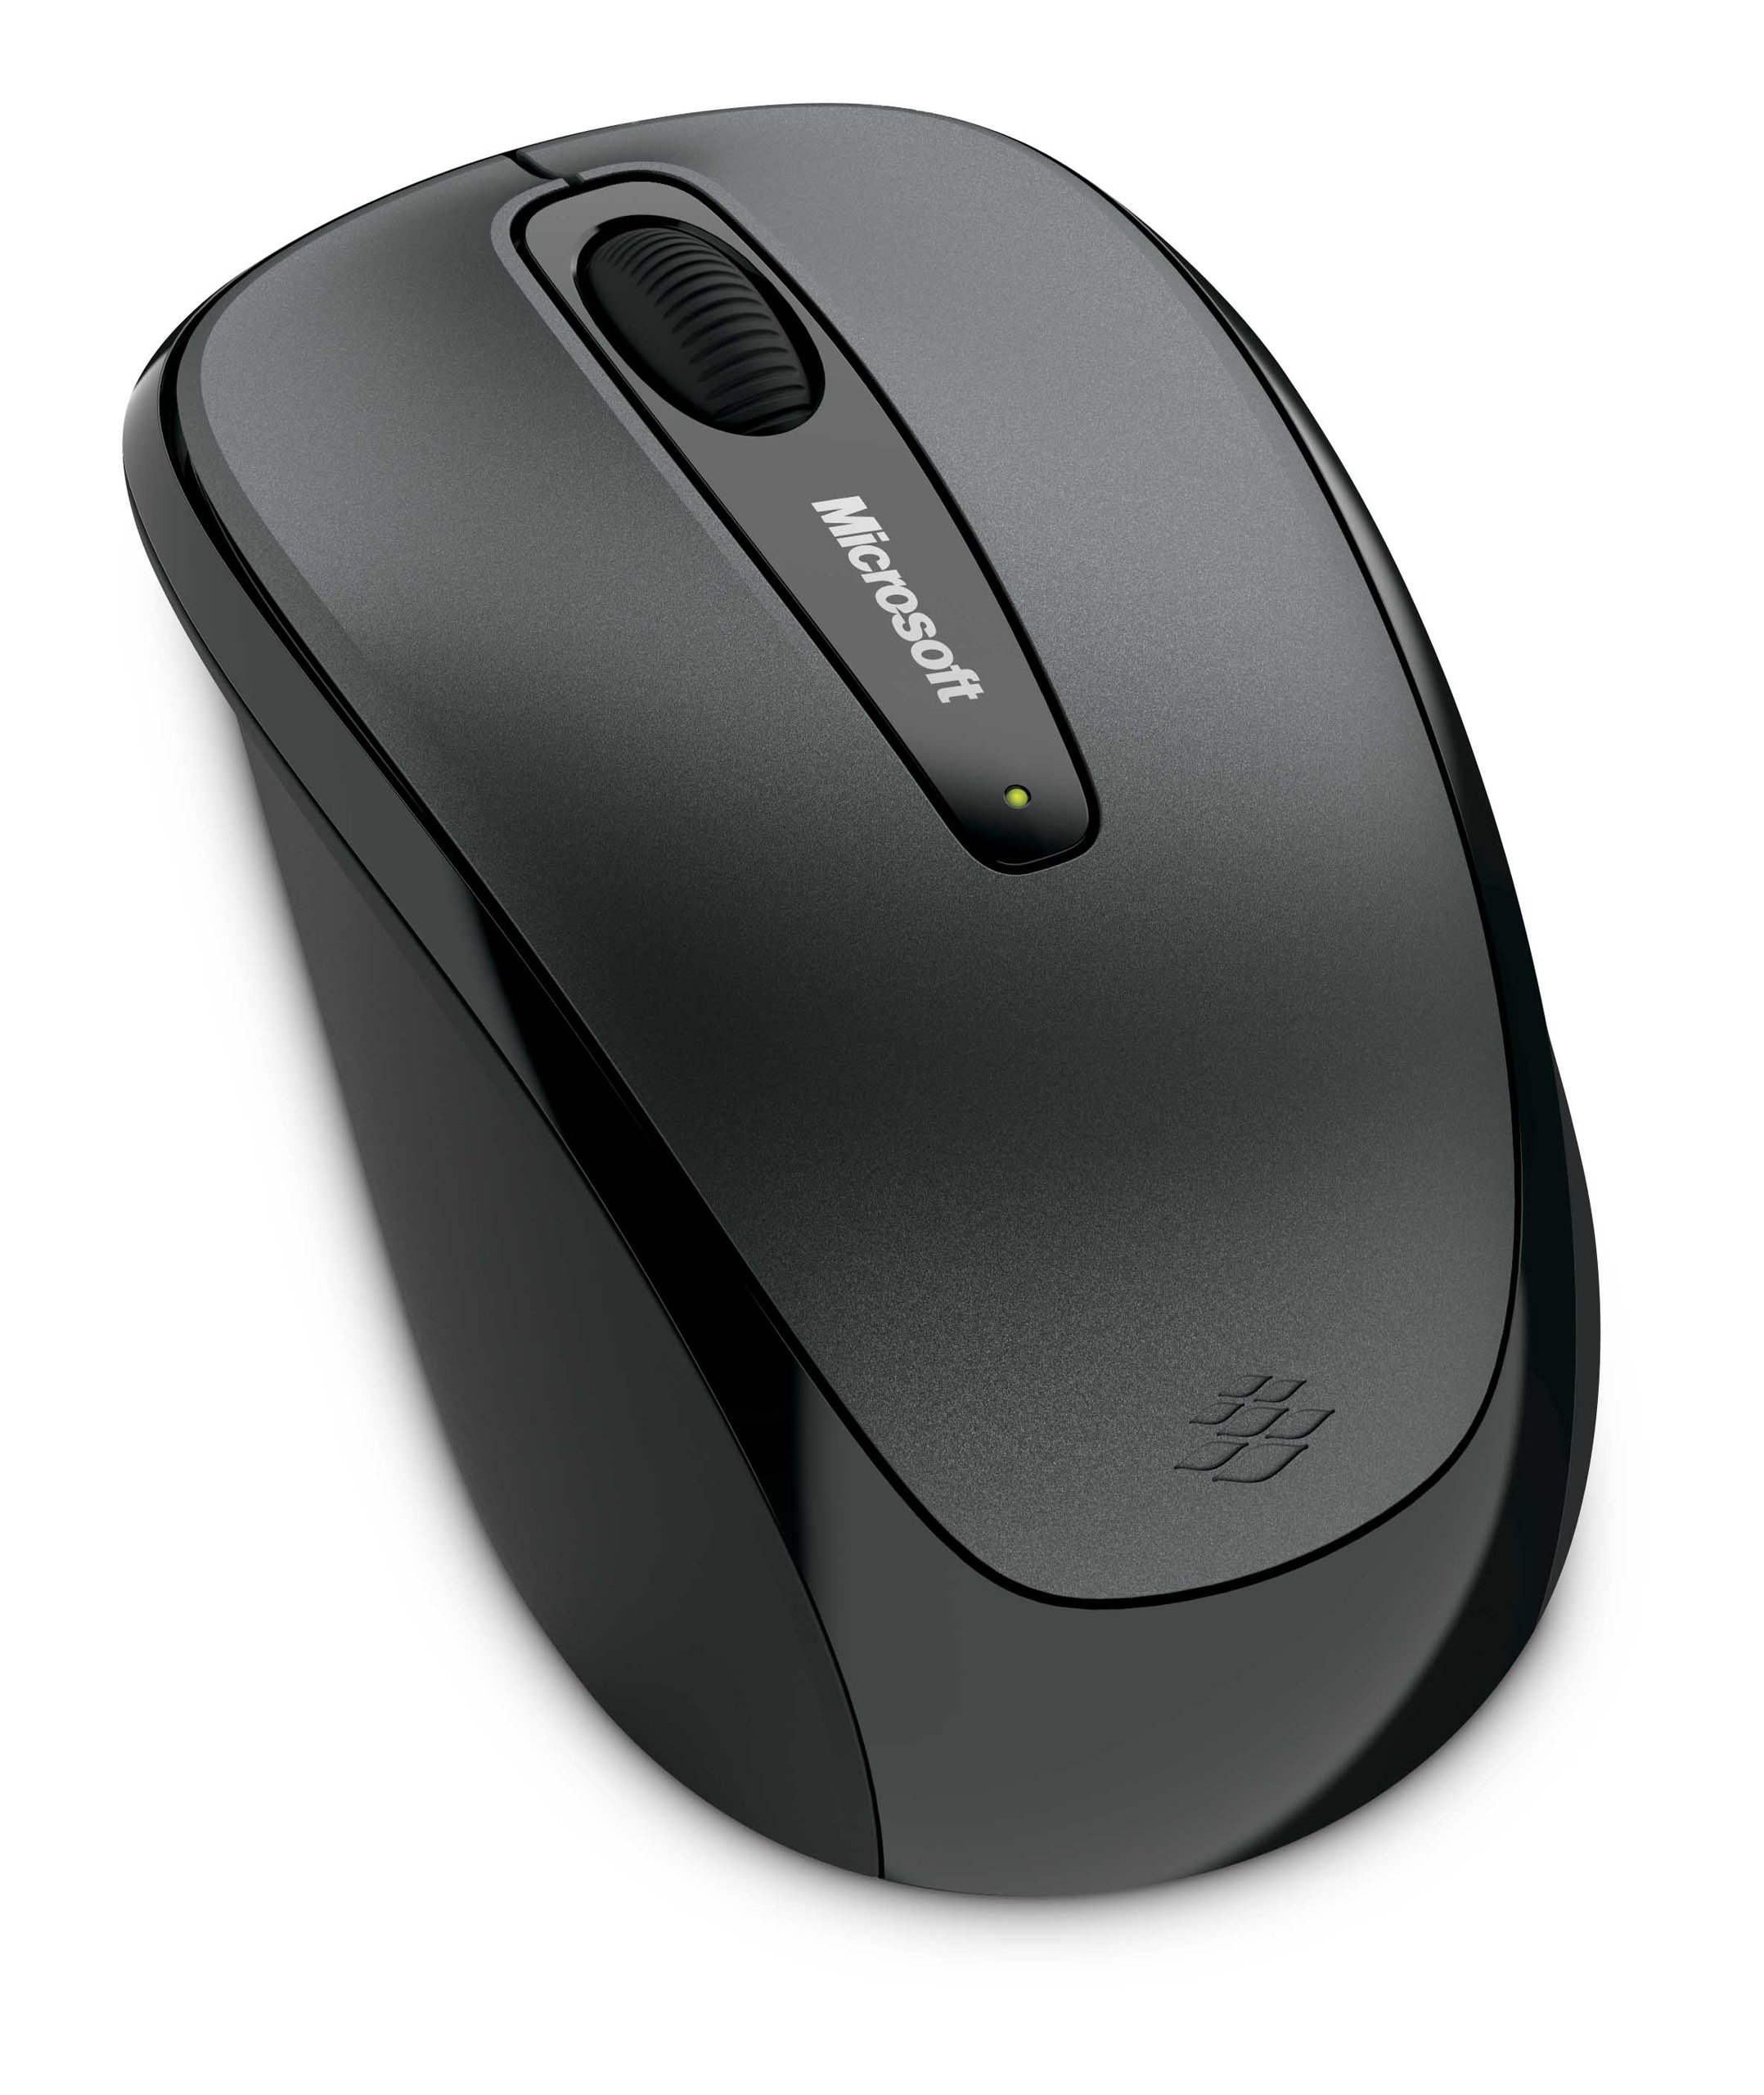 Microsoft Wireless Mobile Mouse 3500 - Loch Ness Gray (GMF-00010) by Microsoft